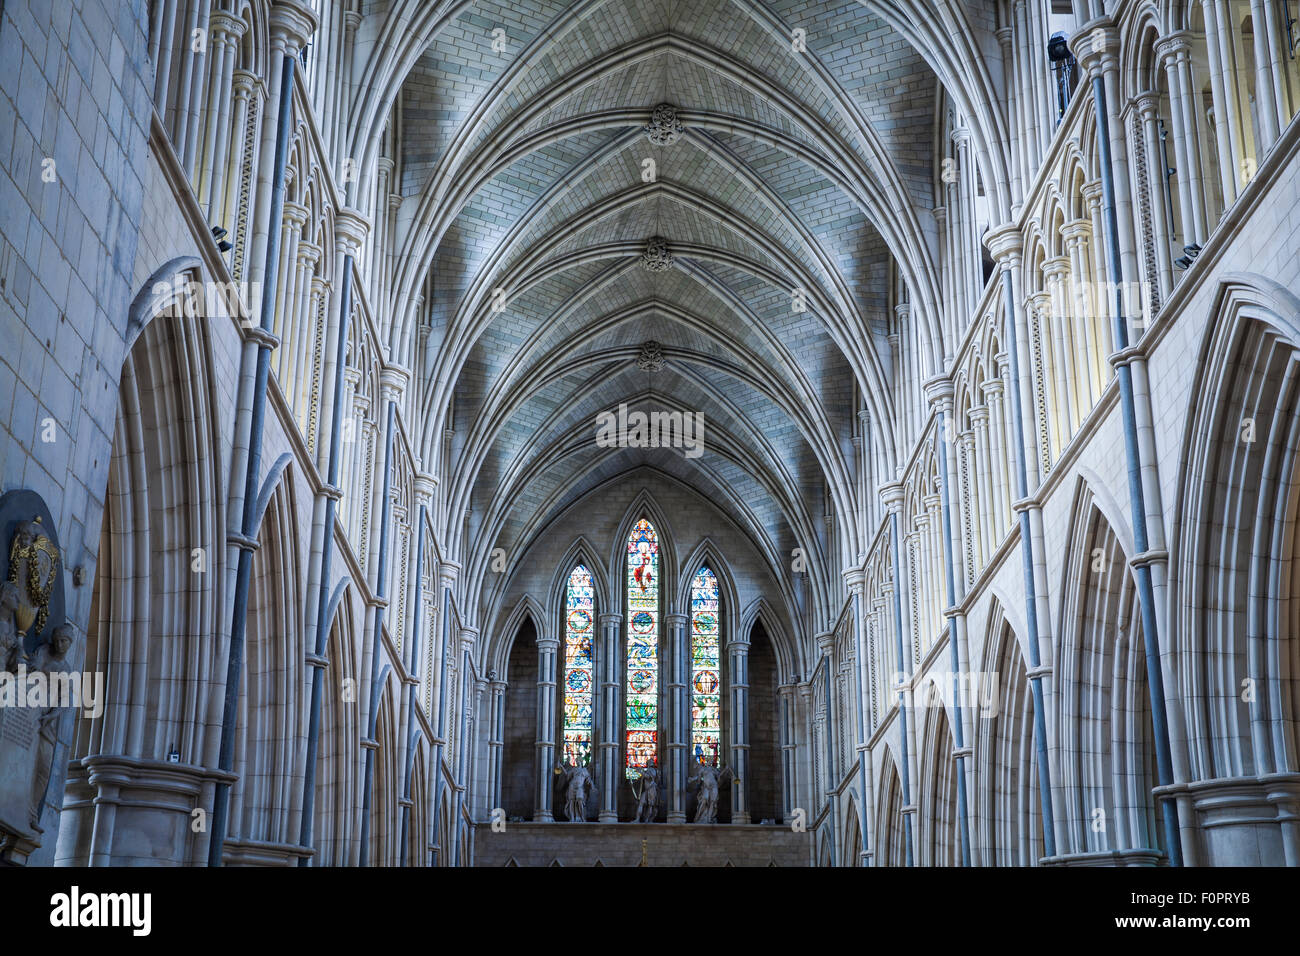 Cathedral vaulted ceiling blog avie for Vaulted ceiling vs cathedral ceiling